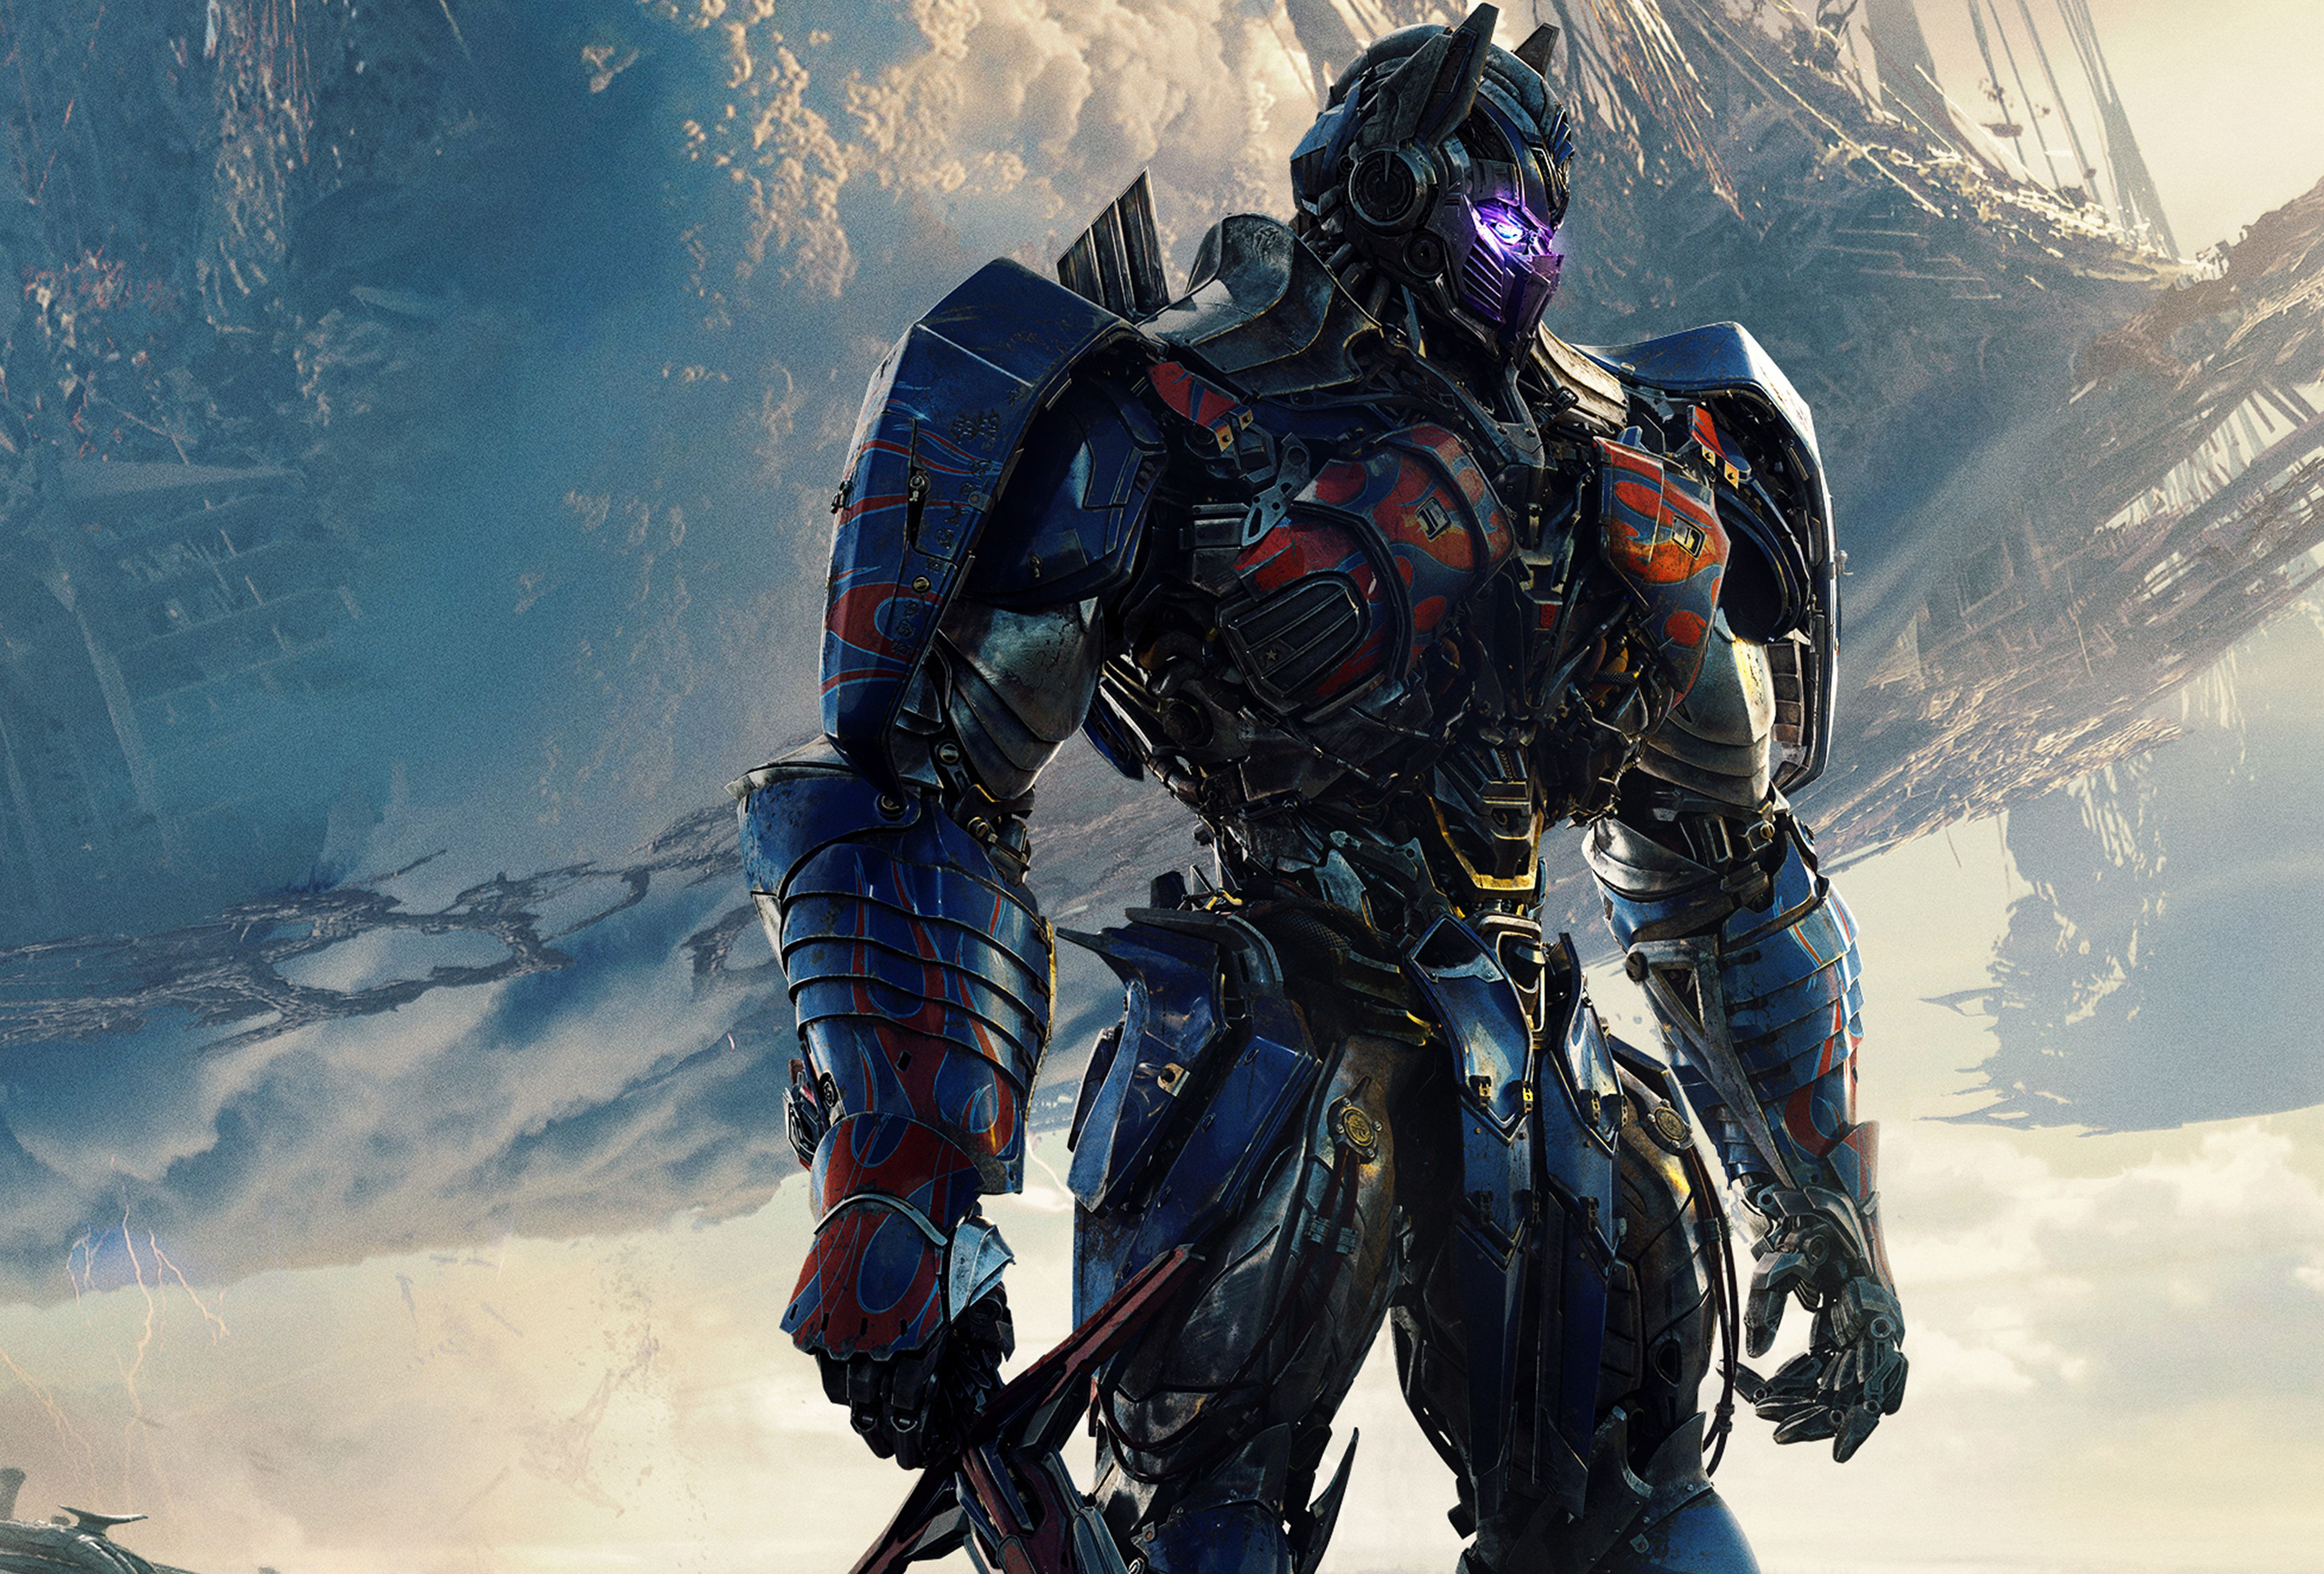 The movie Transformers 6 is blockbuster full action movie